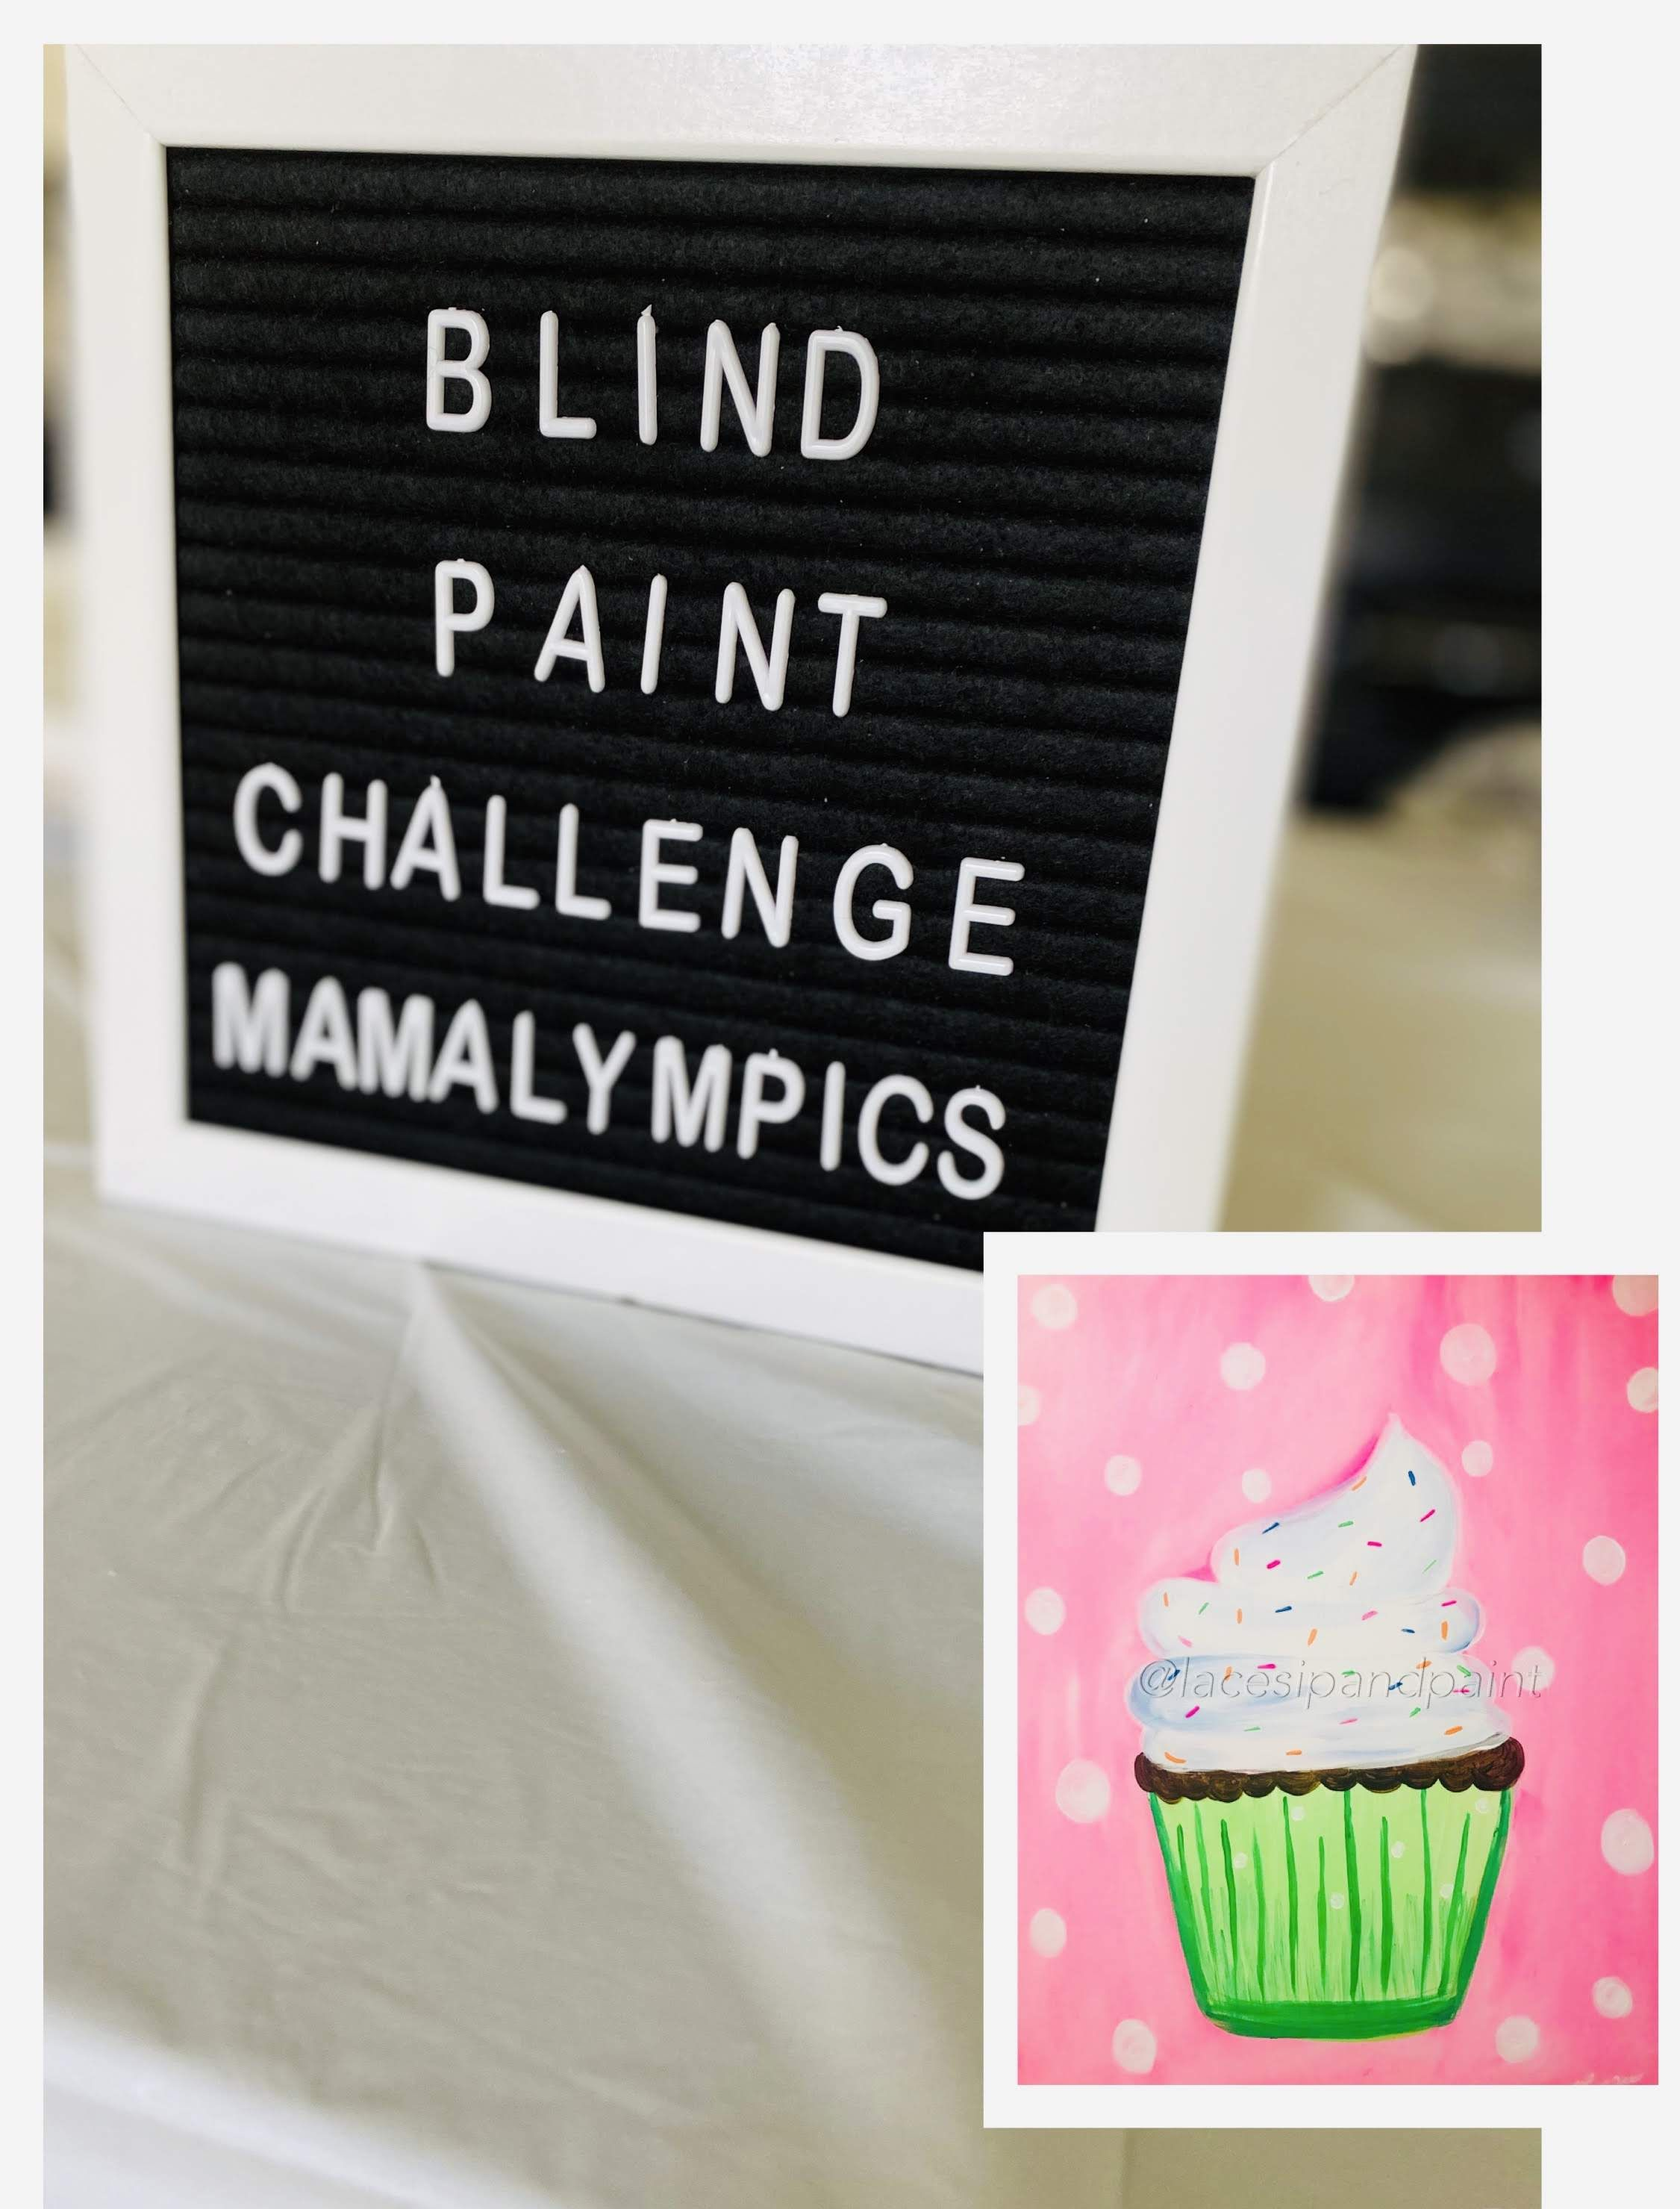 Blind paint challenge at home game ideas in 2020